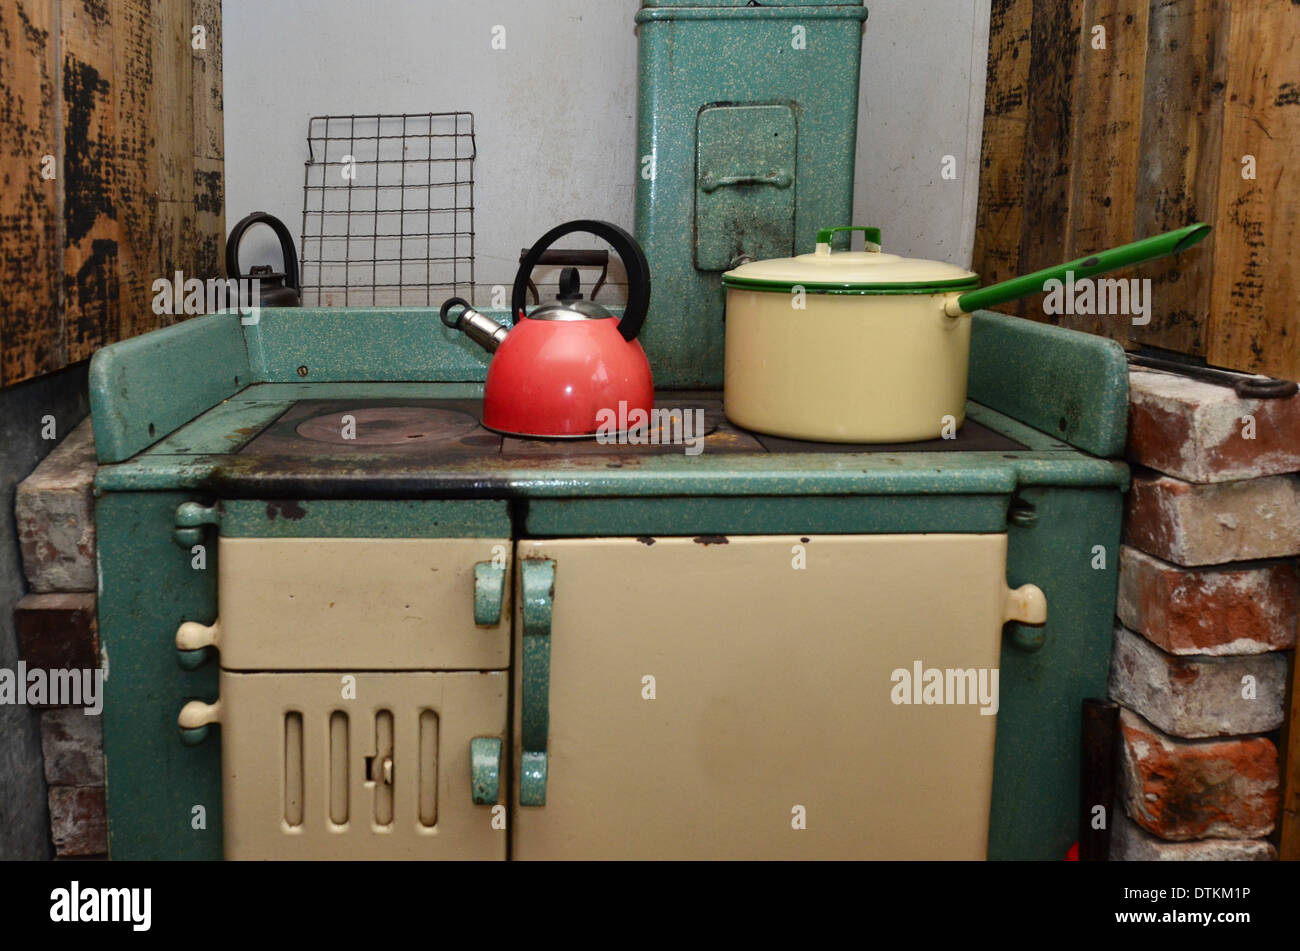 An old stove with cookeries in vintage kitchen. - Stock Image